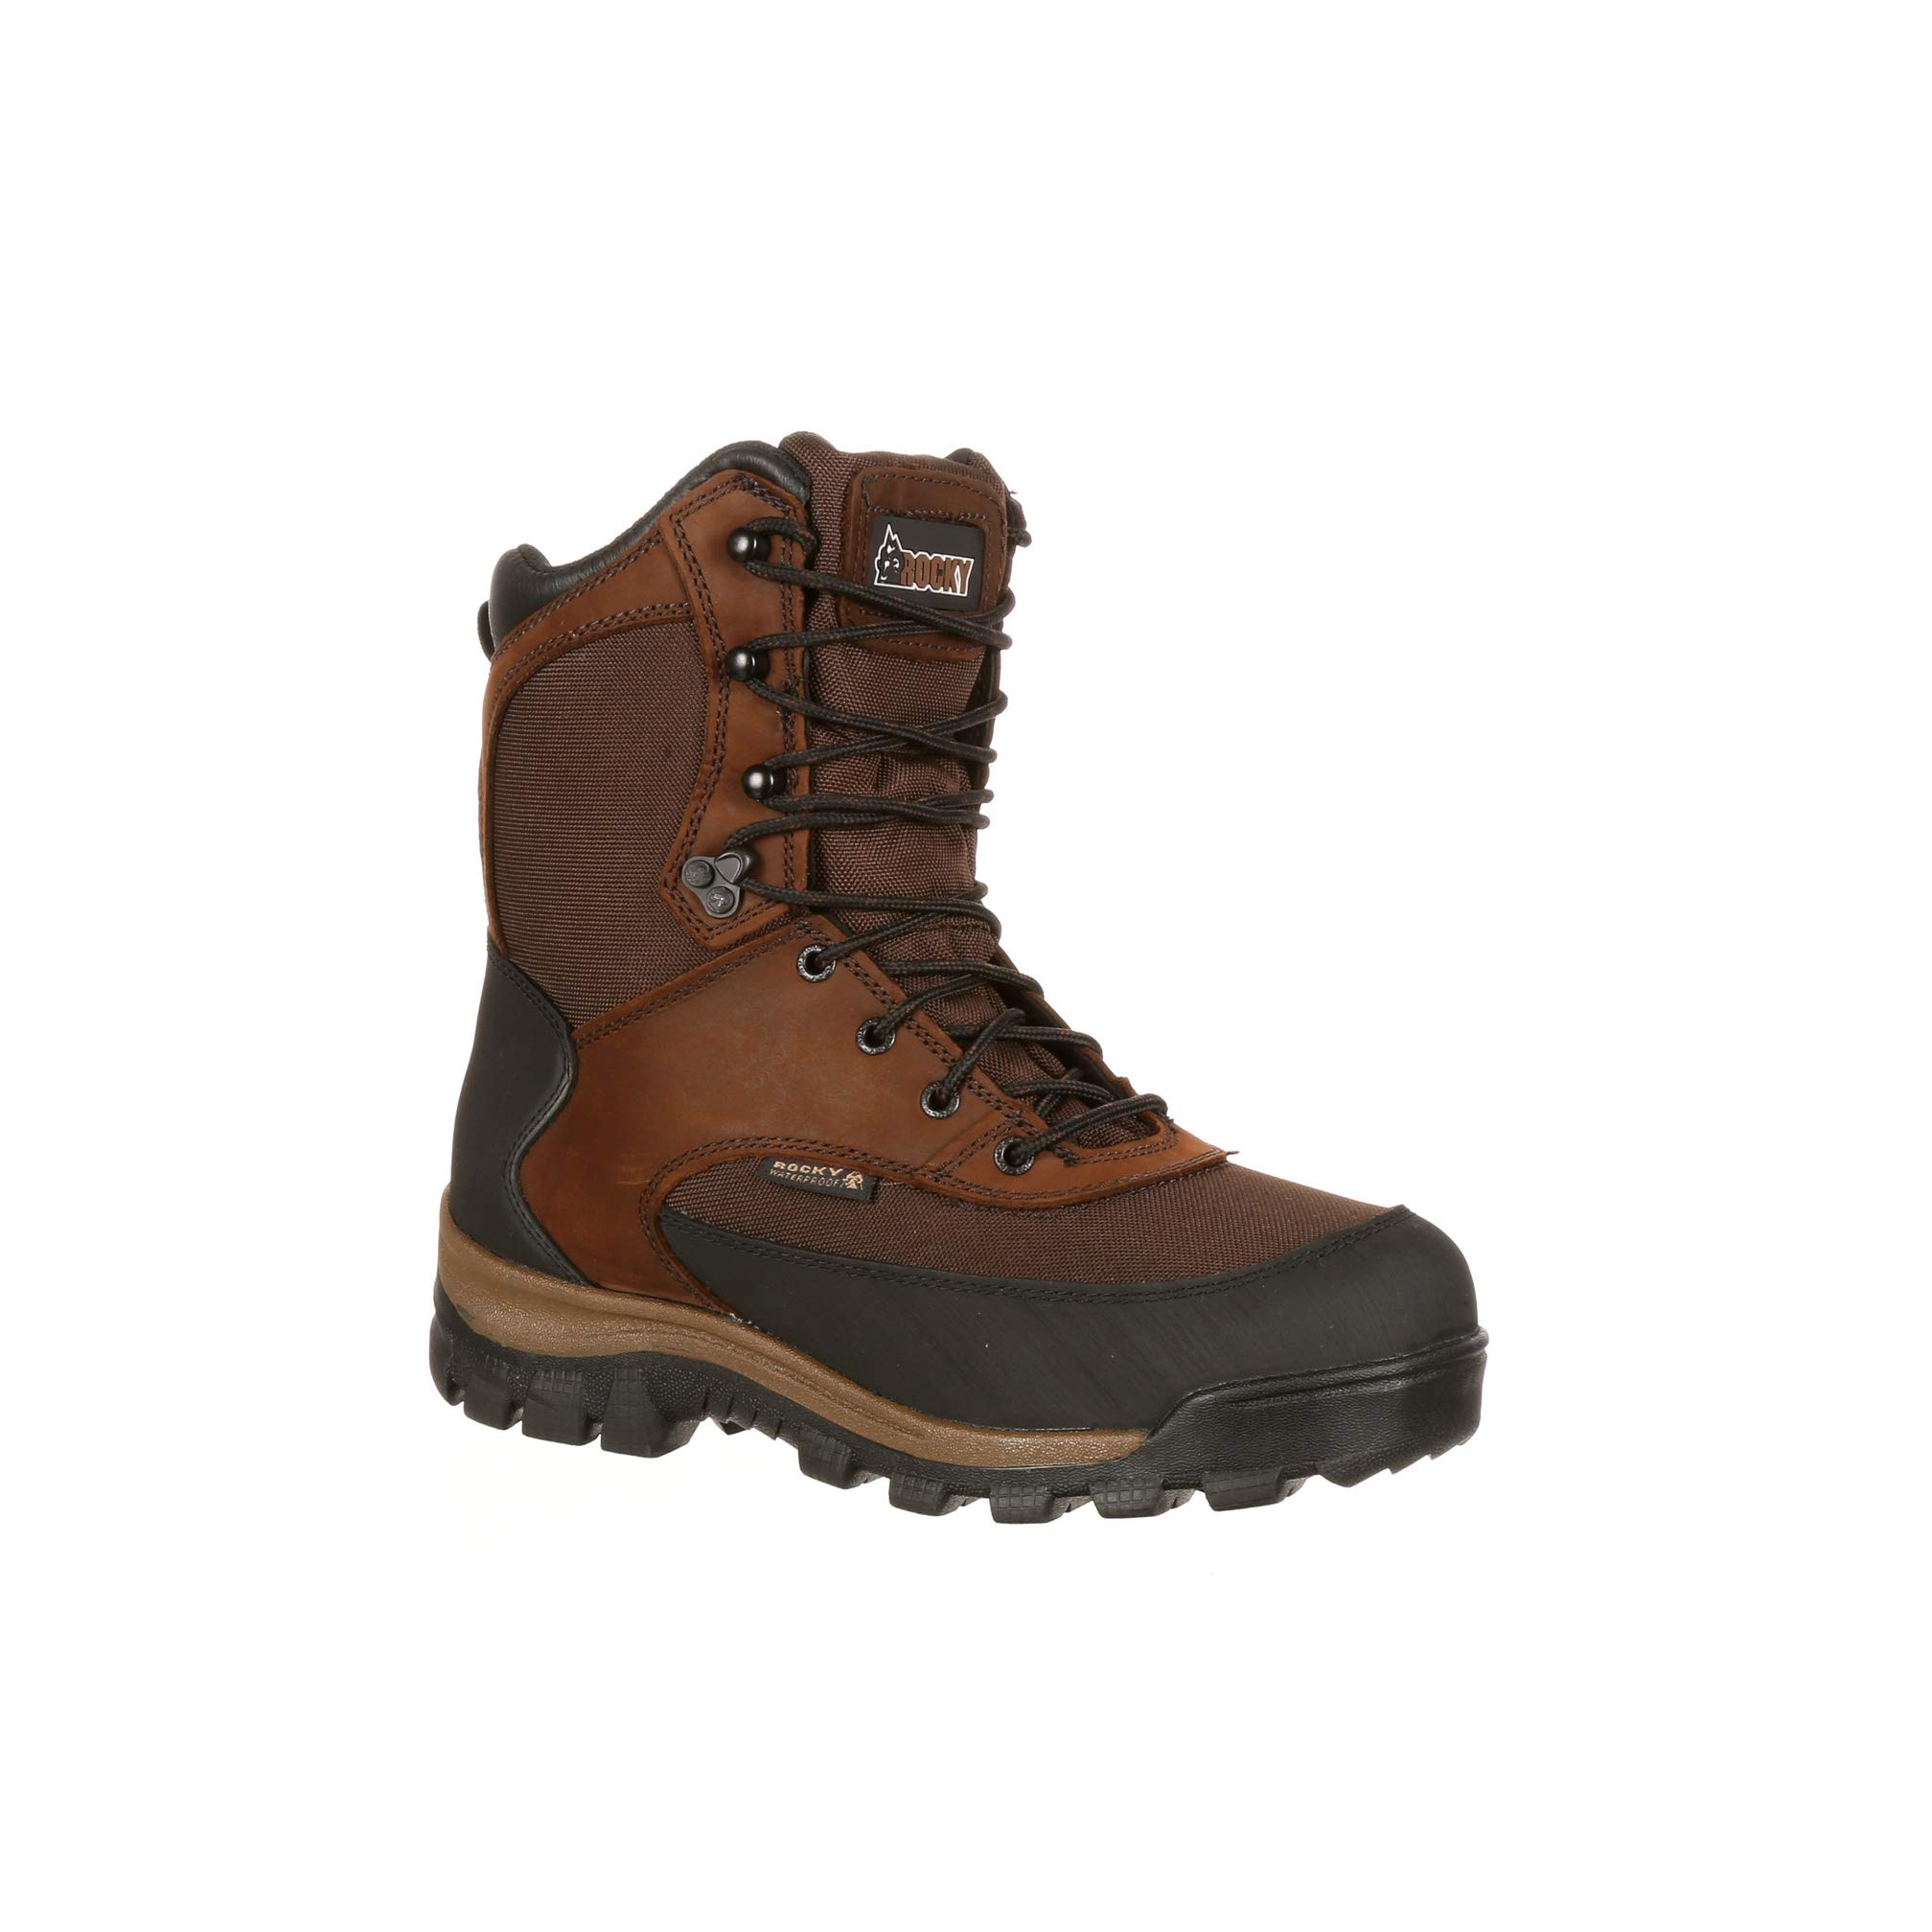 Rocky Men's 8'' Core Waterproof Insulated Outdoor Boot-FQ0004753 (M10) Brown by Rocky Boots